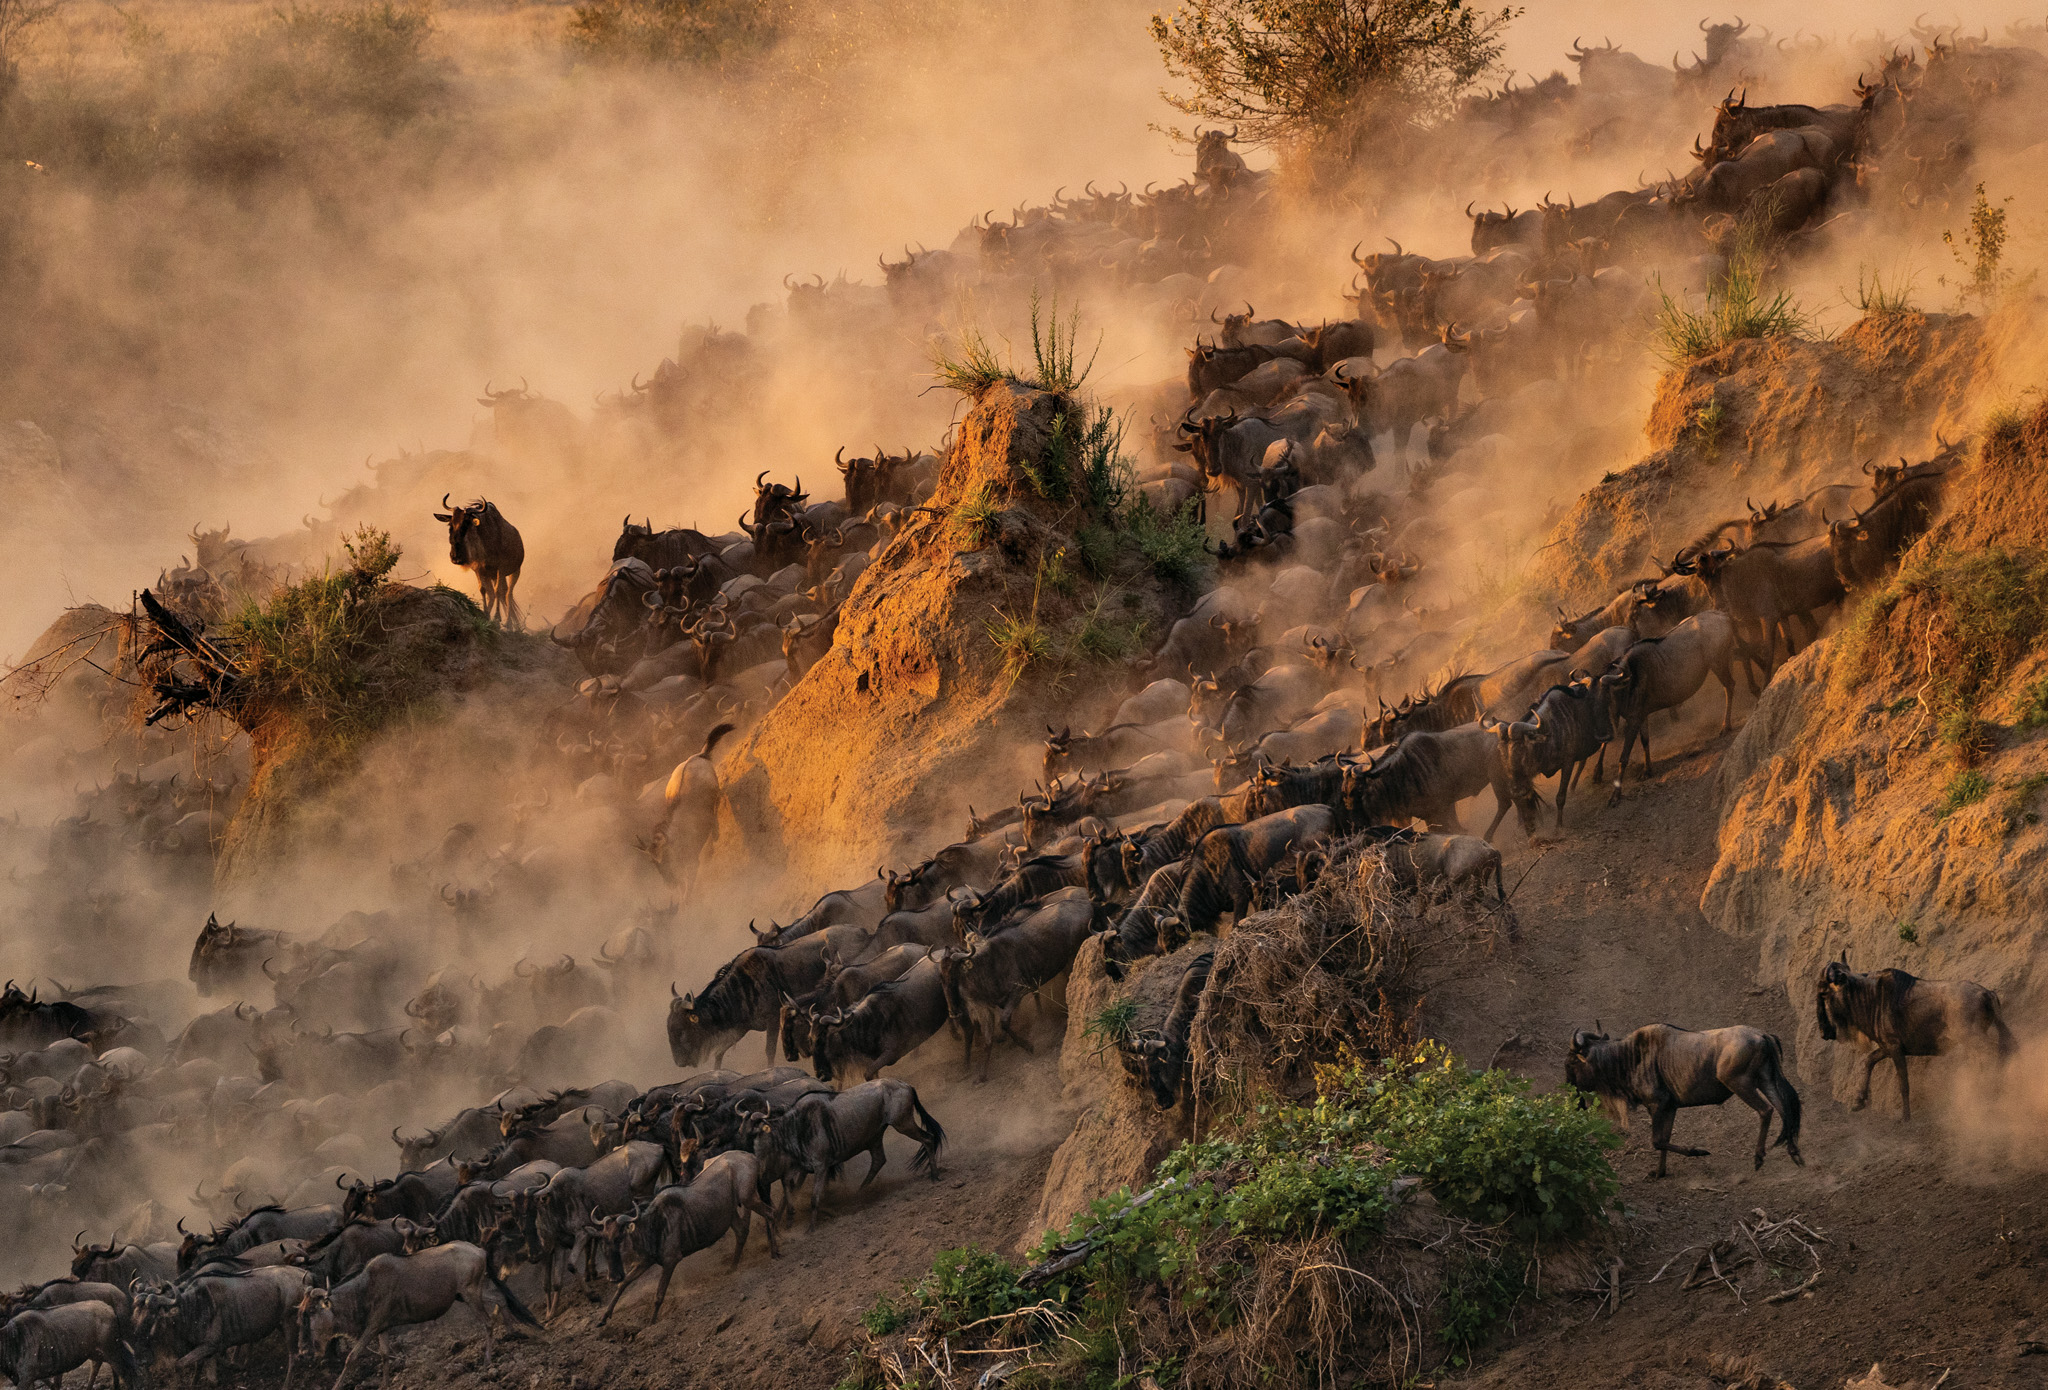 Picture of a stampede of wildebeests through a dusty hillside